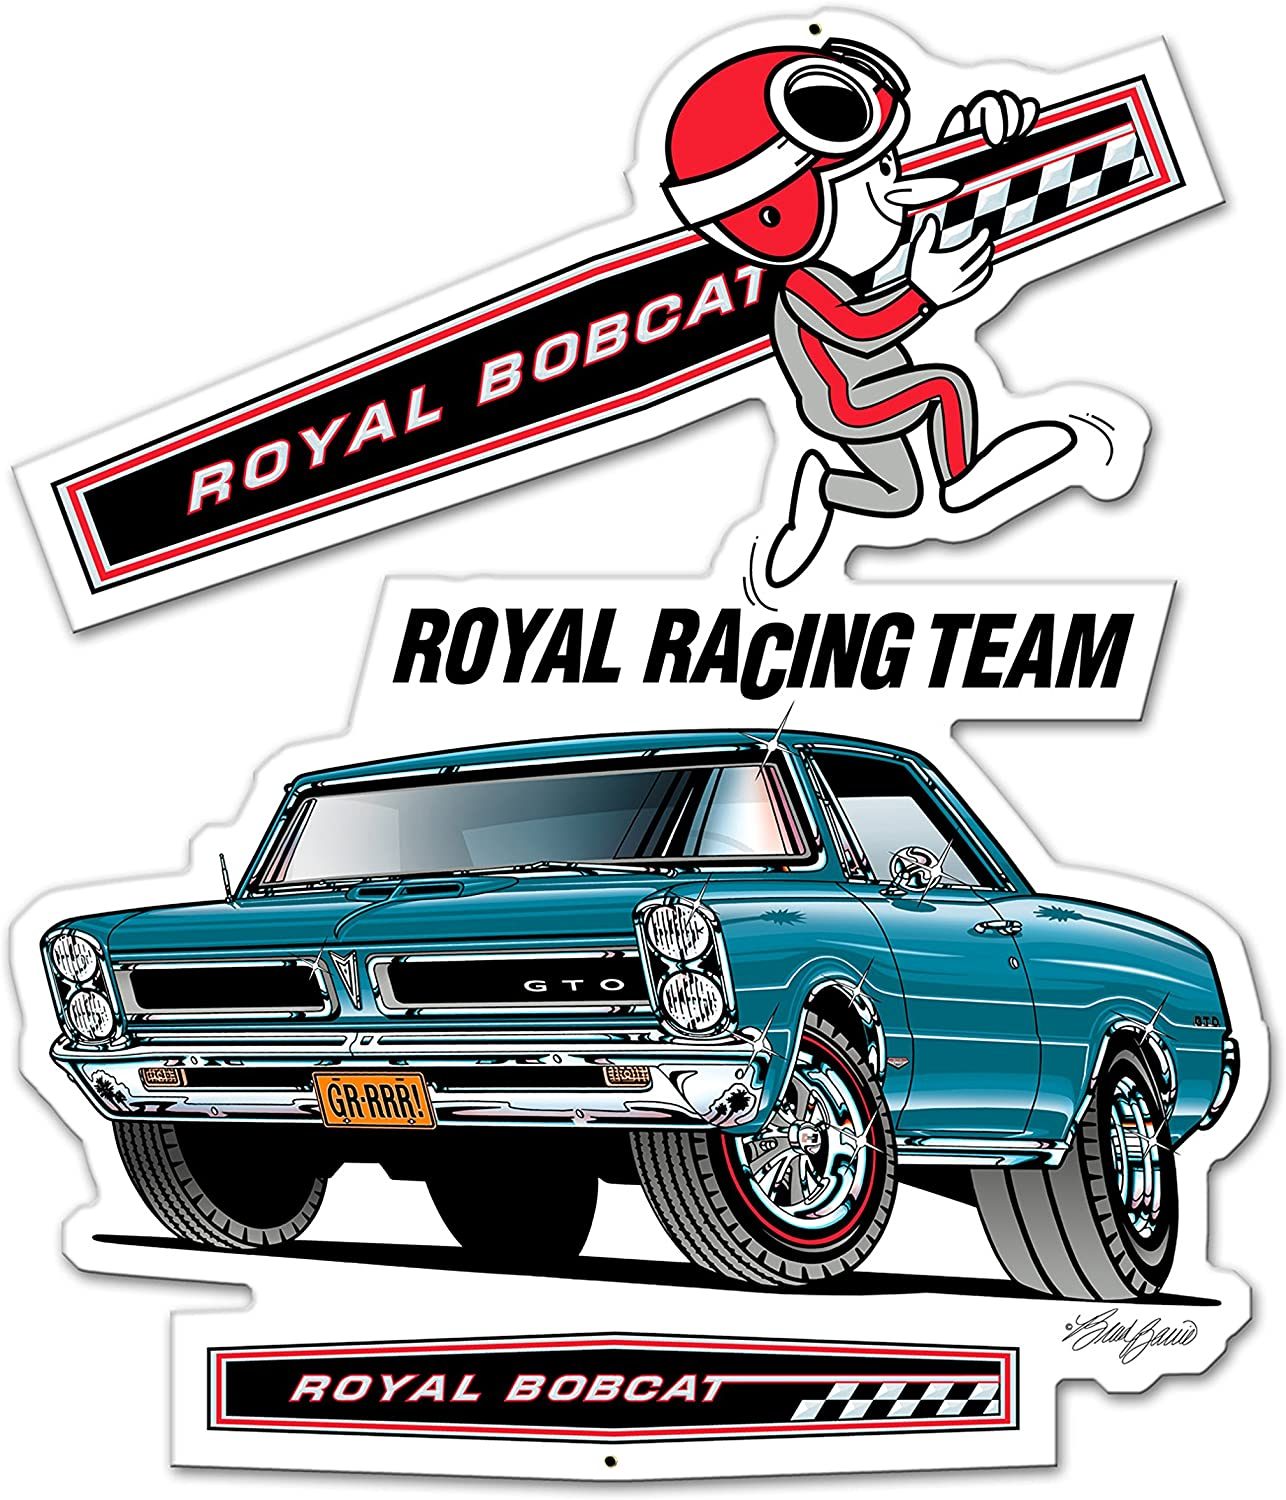 "1965 Pontiac GTO Royal Bobcat Racing Team Sign 21"" x 18"" Hurst Drag Gasser"